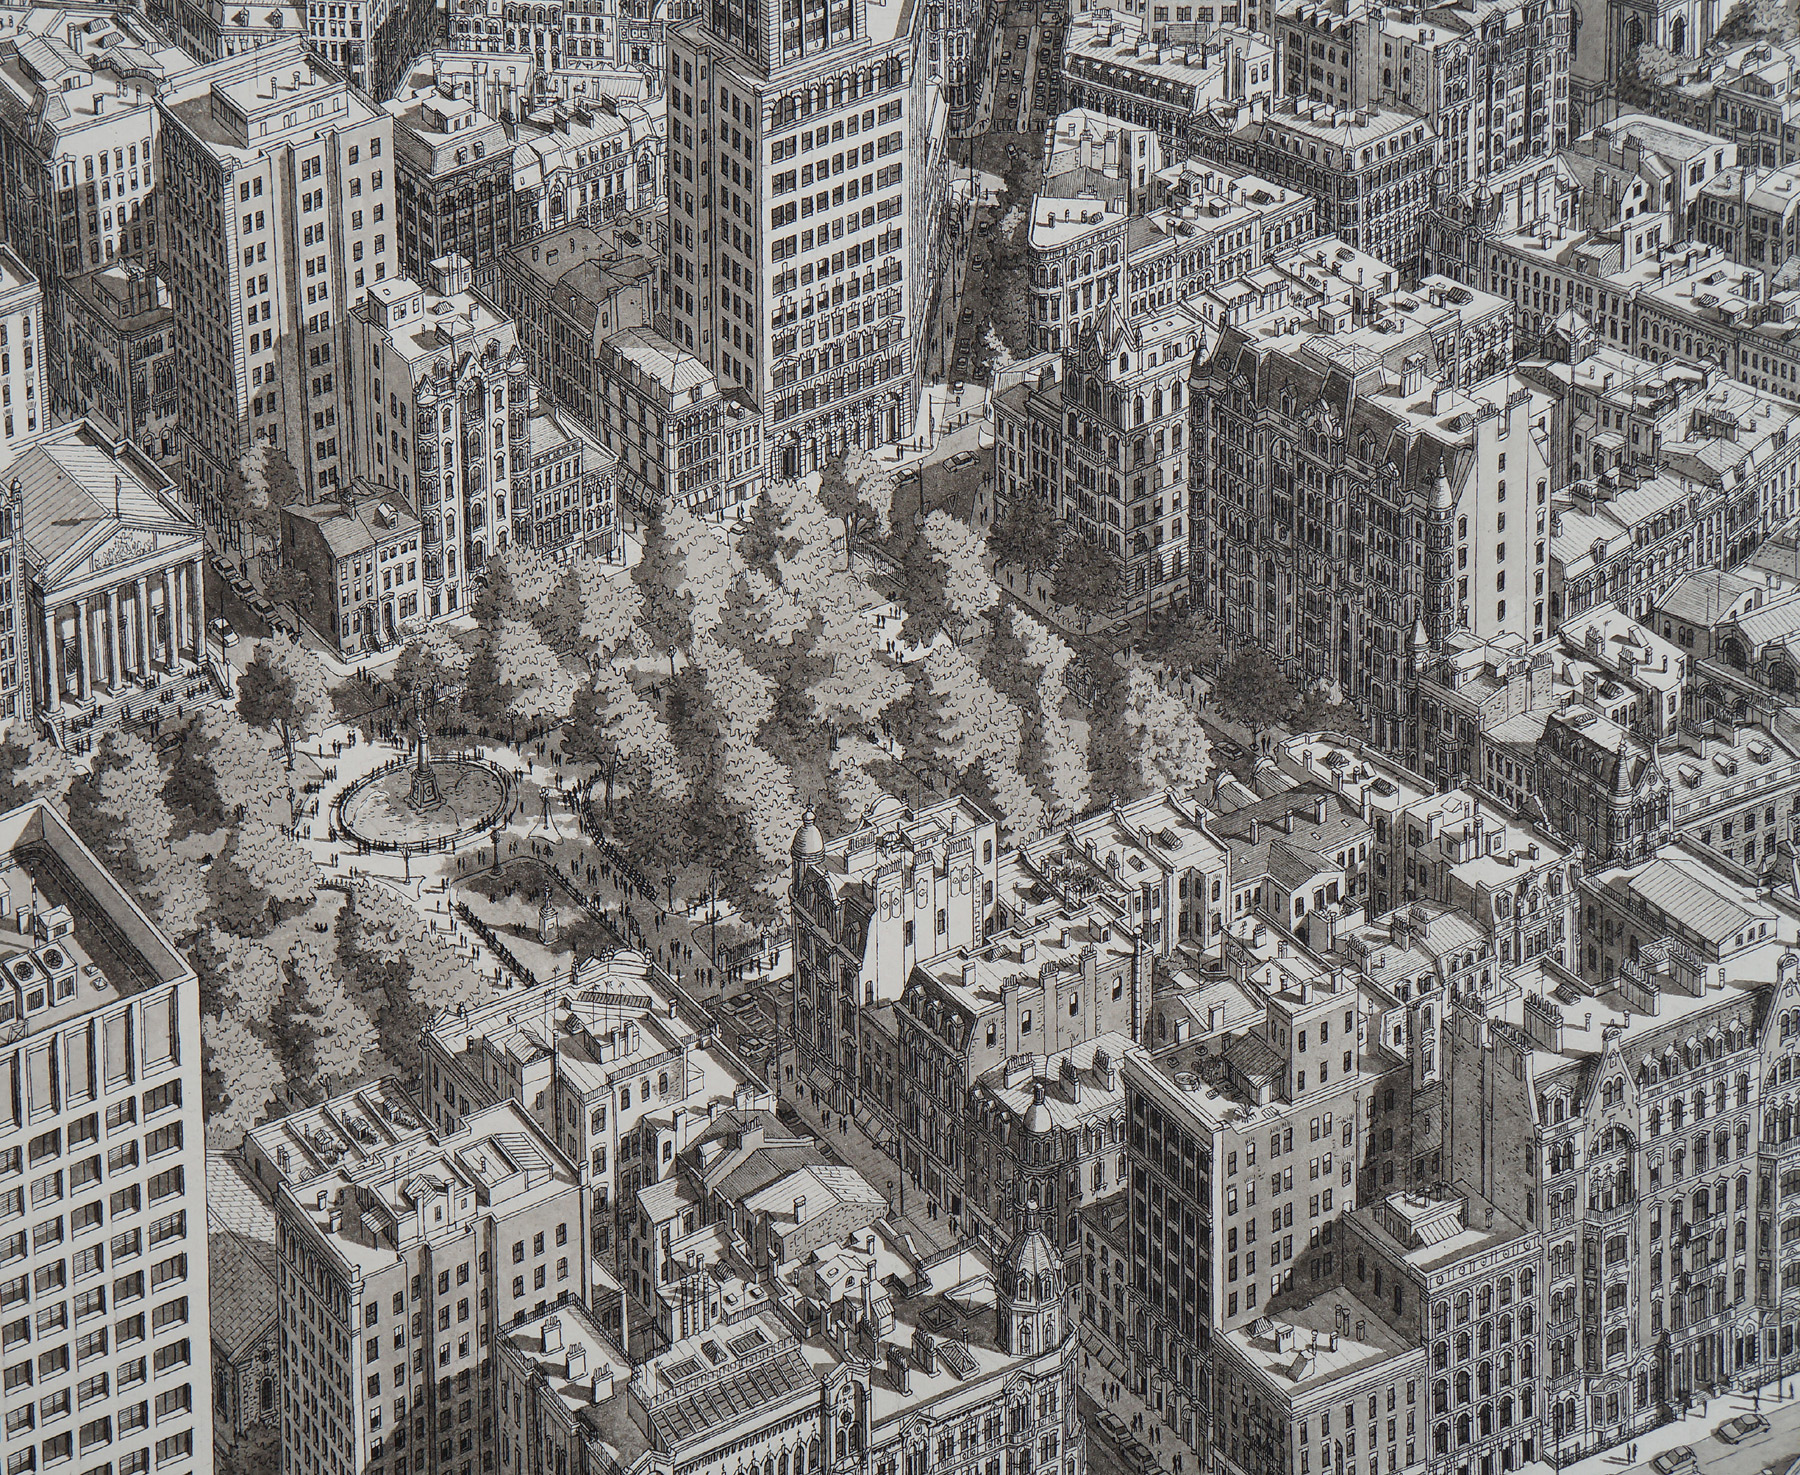 Incredibly Detailed Cityscape Artworks by Stefan Bleekrode